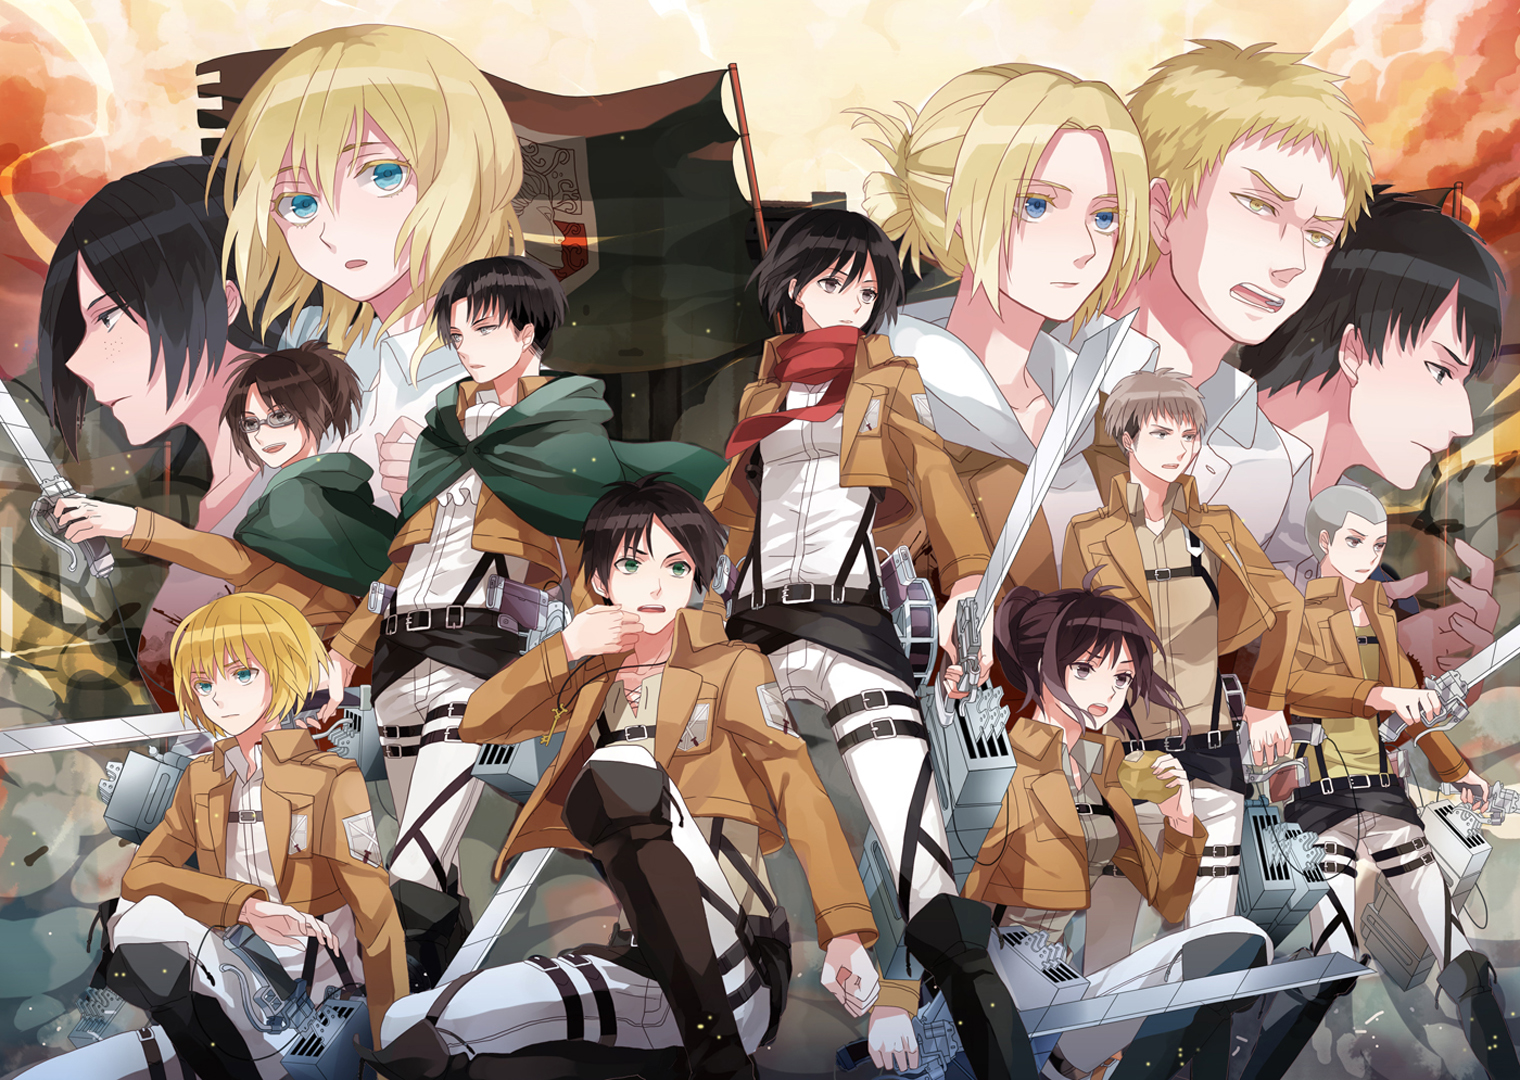 Levi Armin Annie Leonhard Sasha Braus HD Wallpaper Backgrounds f9 1520x1080